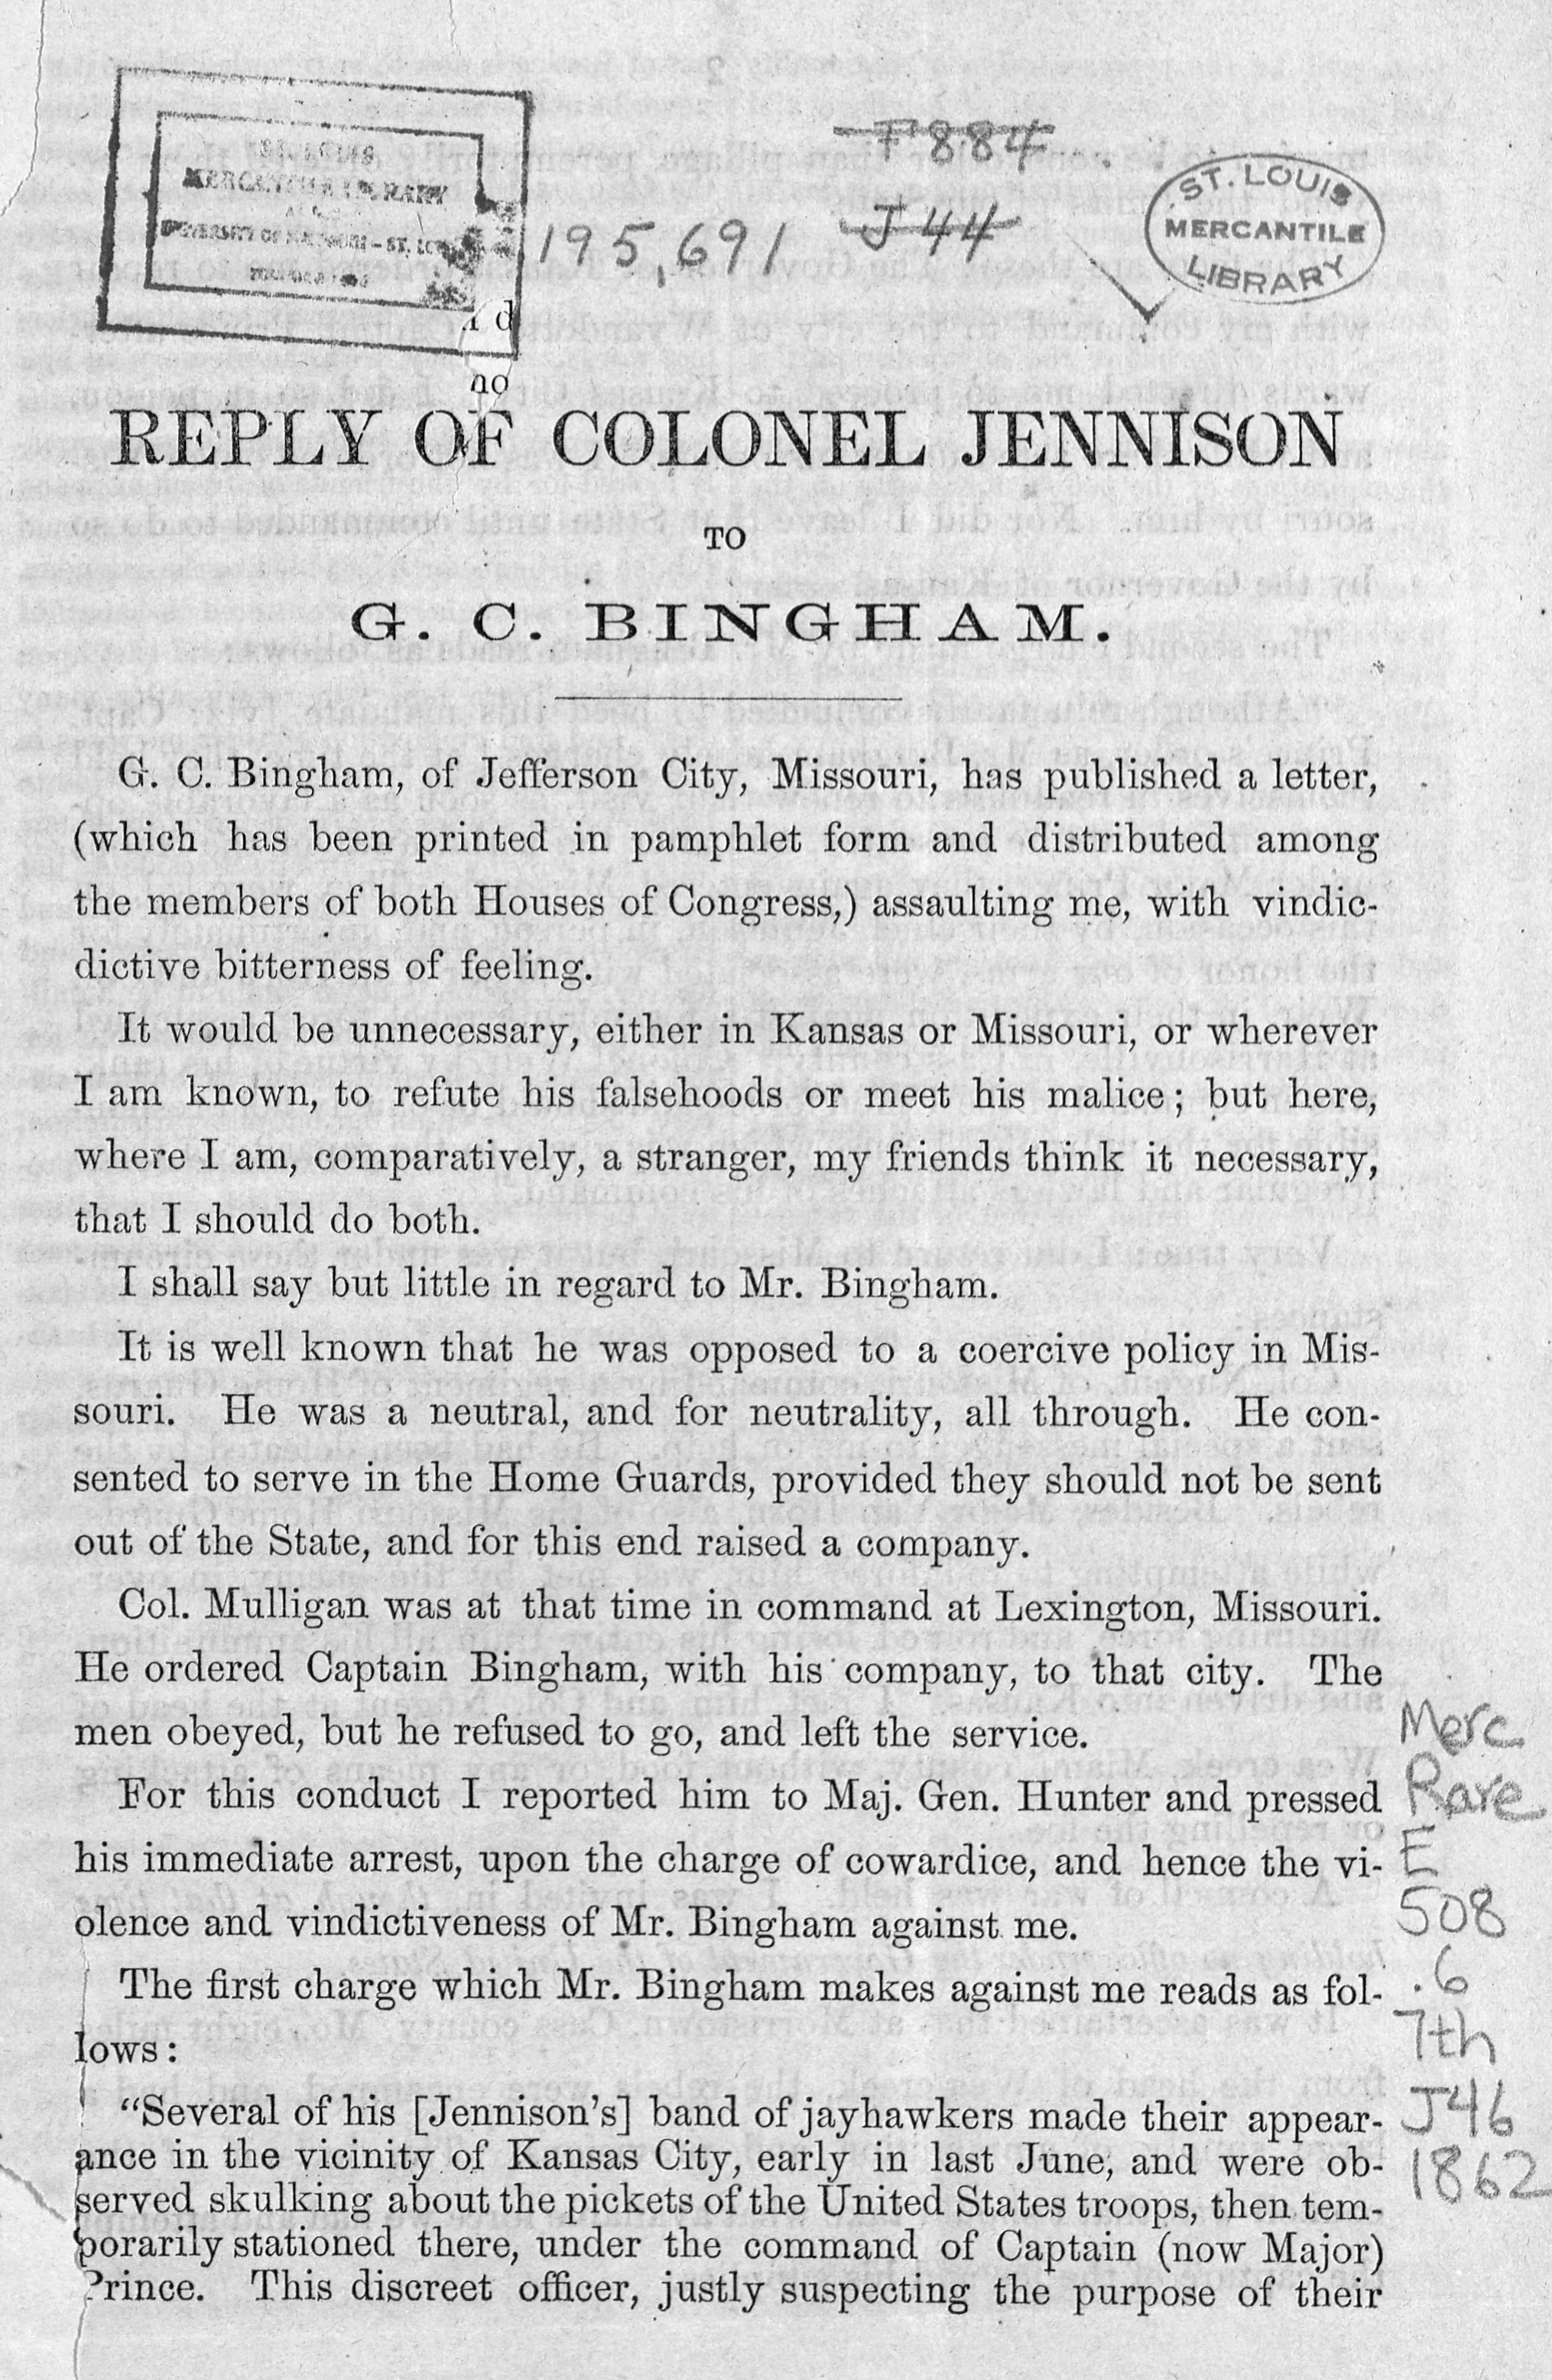 Reply of Colonel Jennison to G.C. Bingham